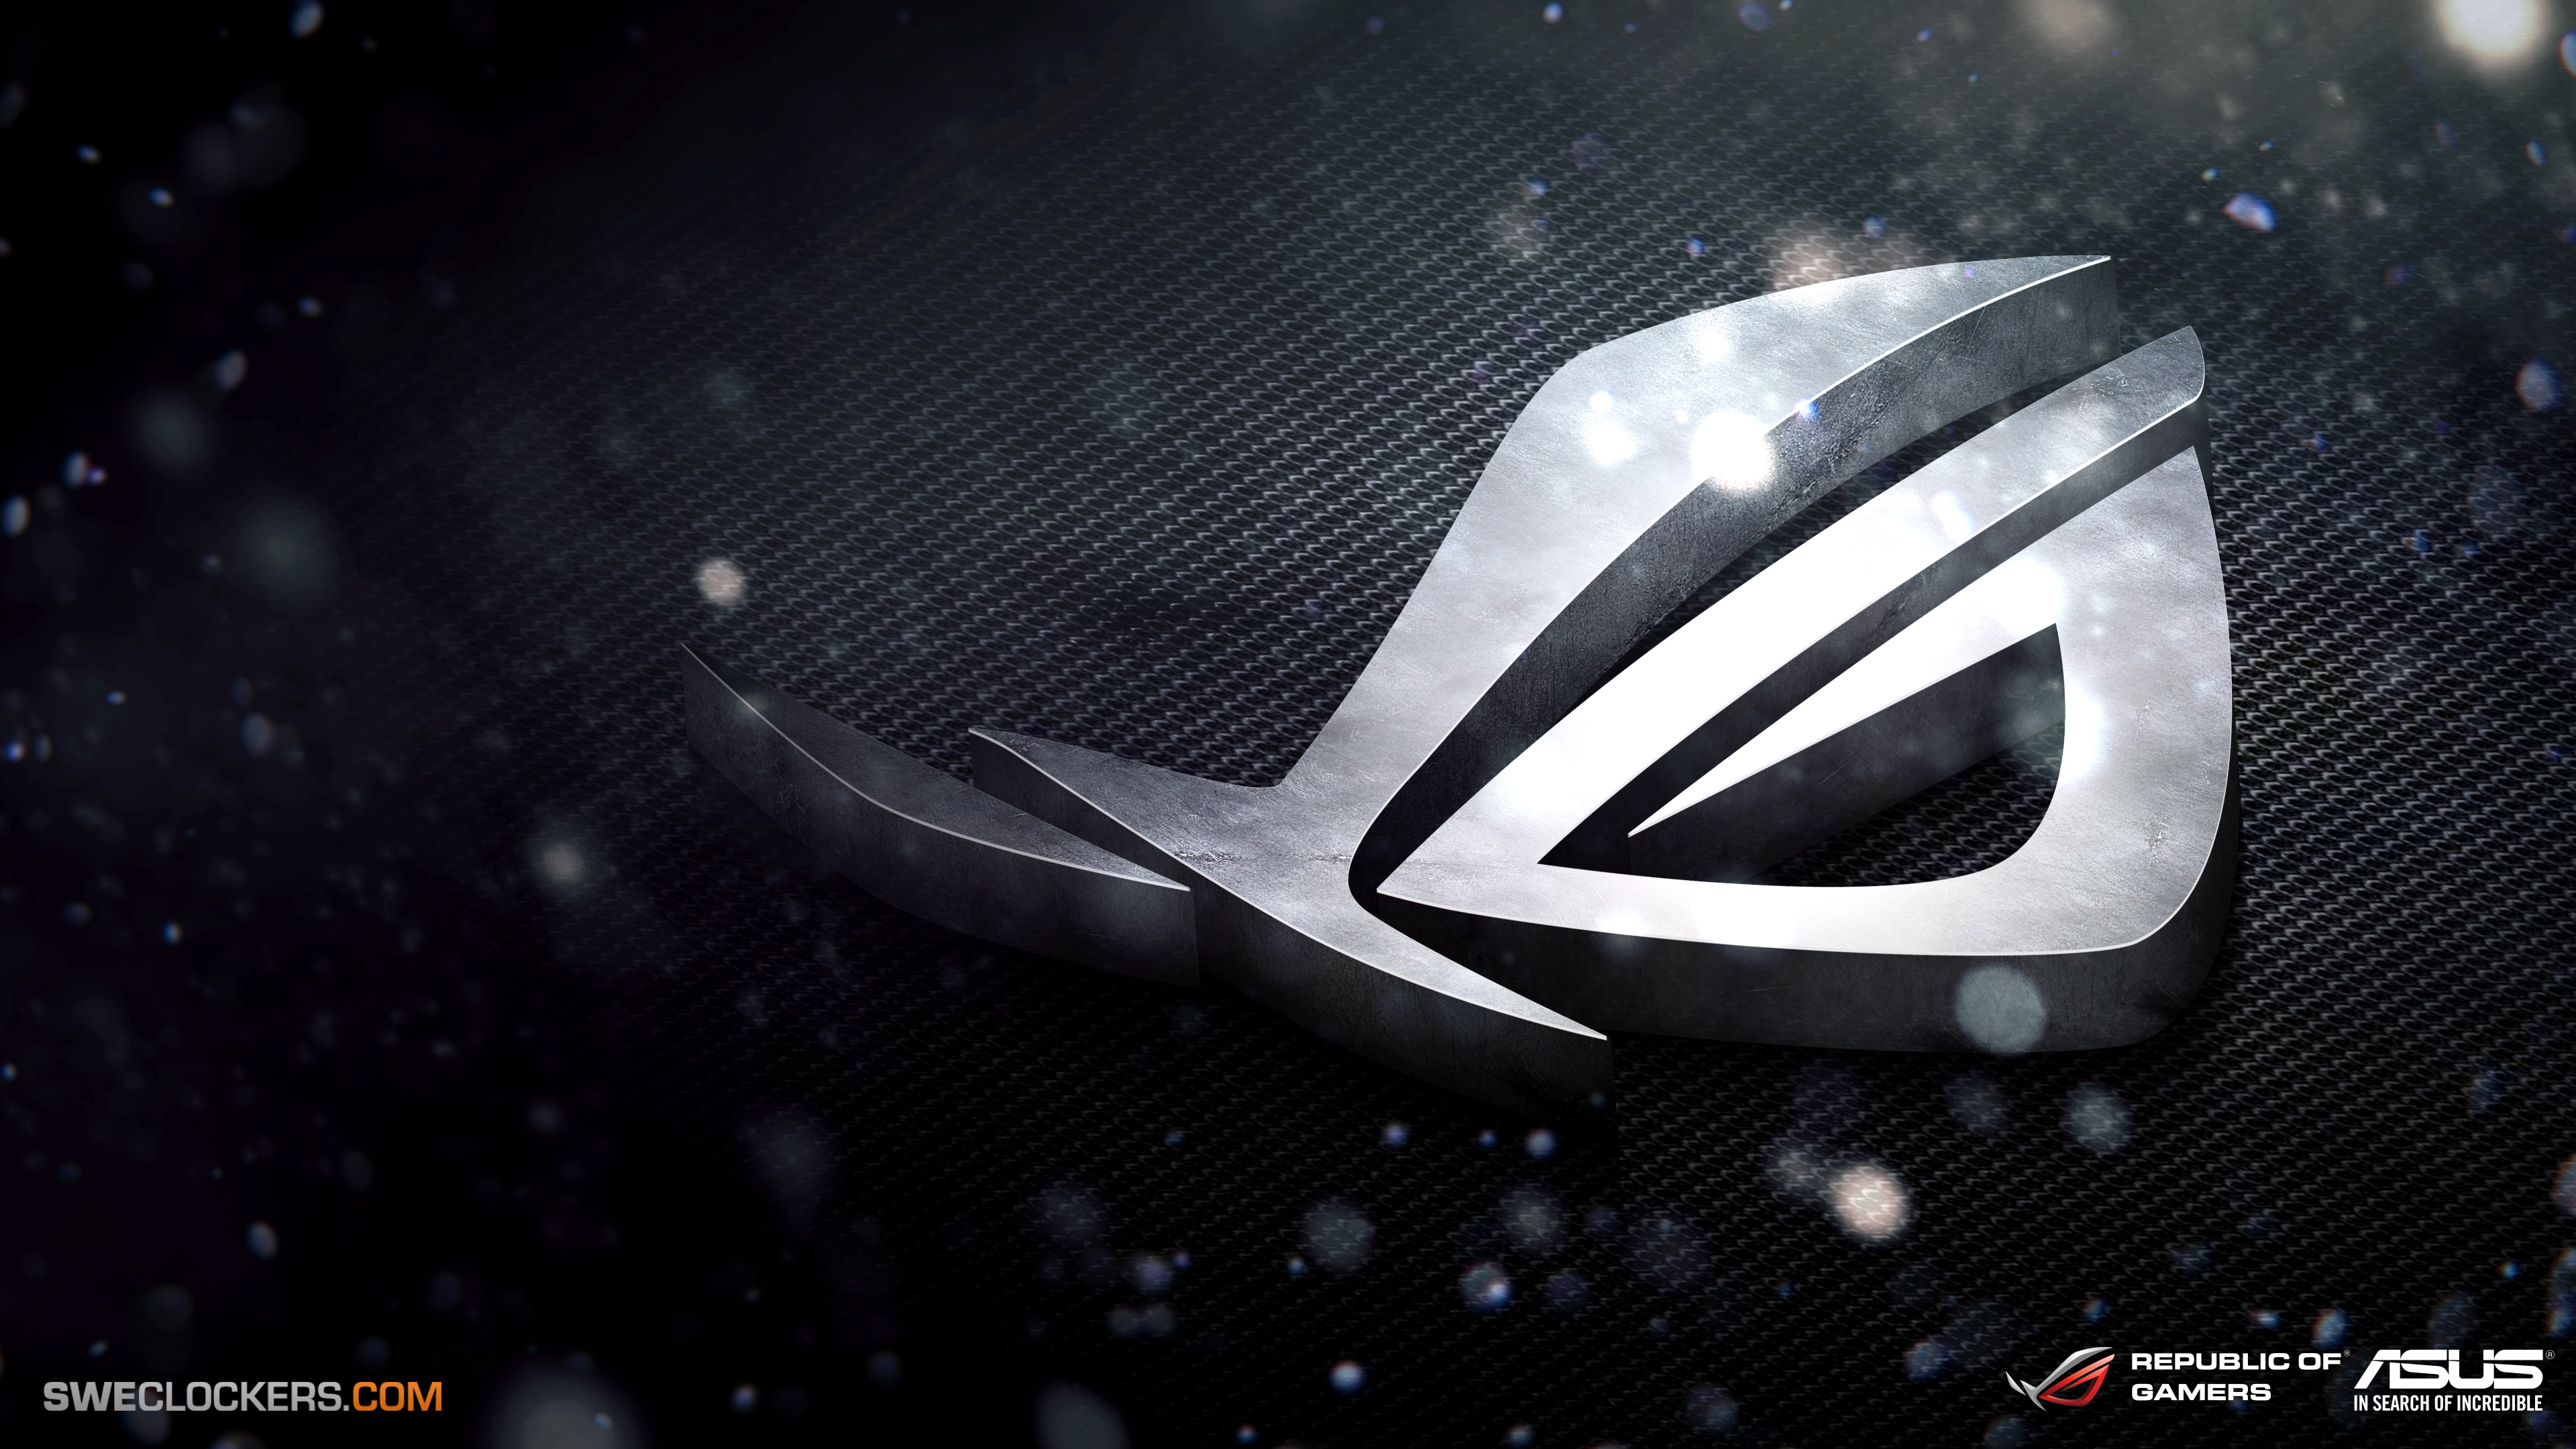 Awesome 4K ROG Wallpapers 3840x2160